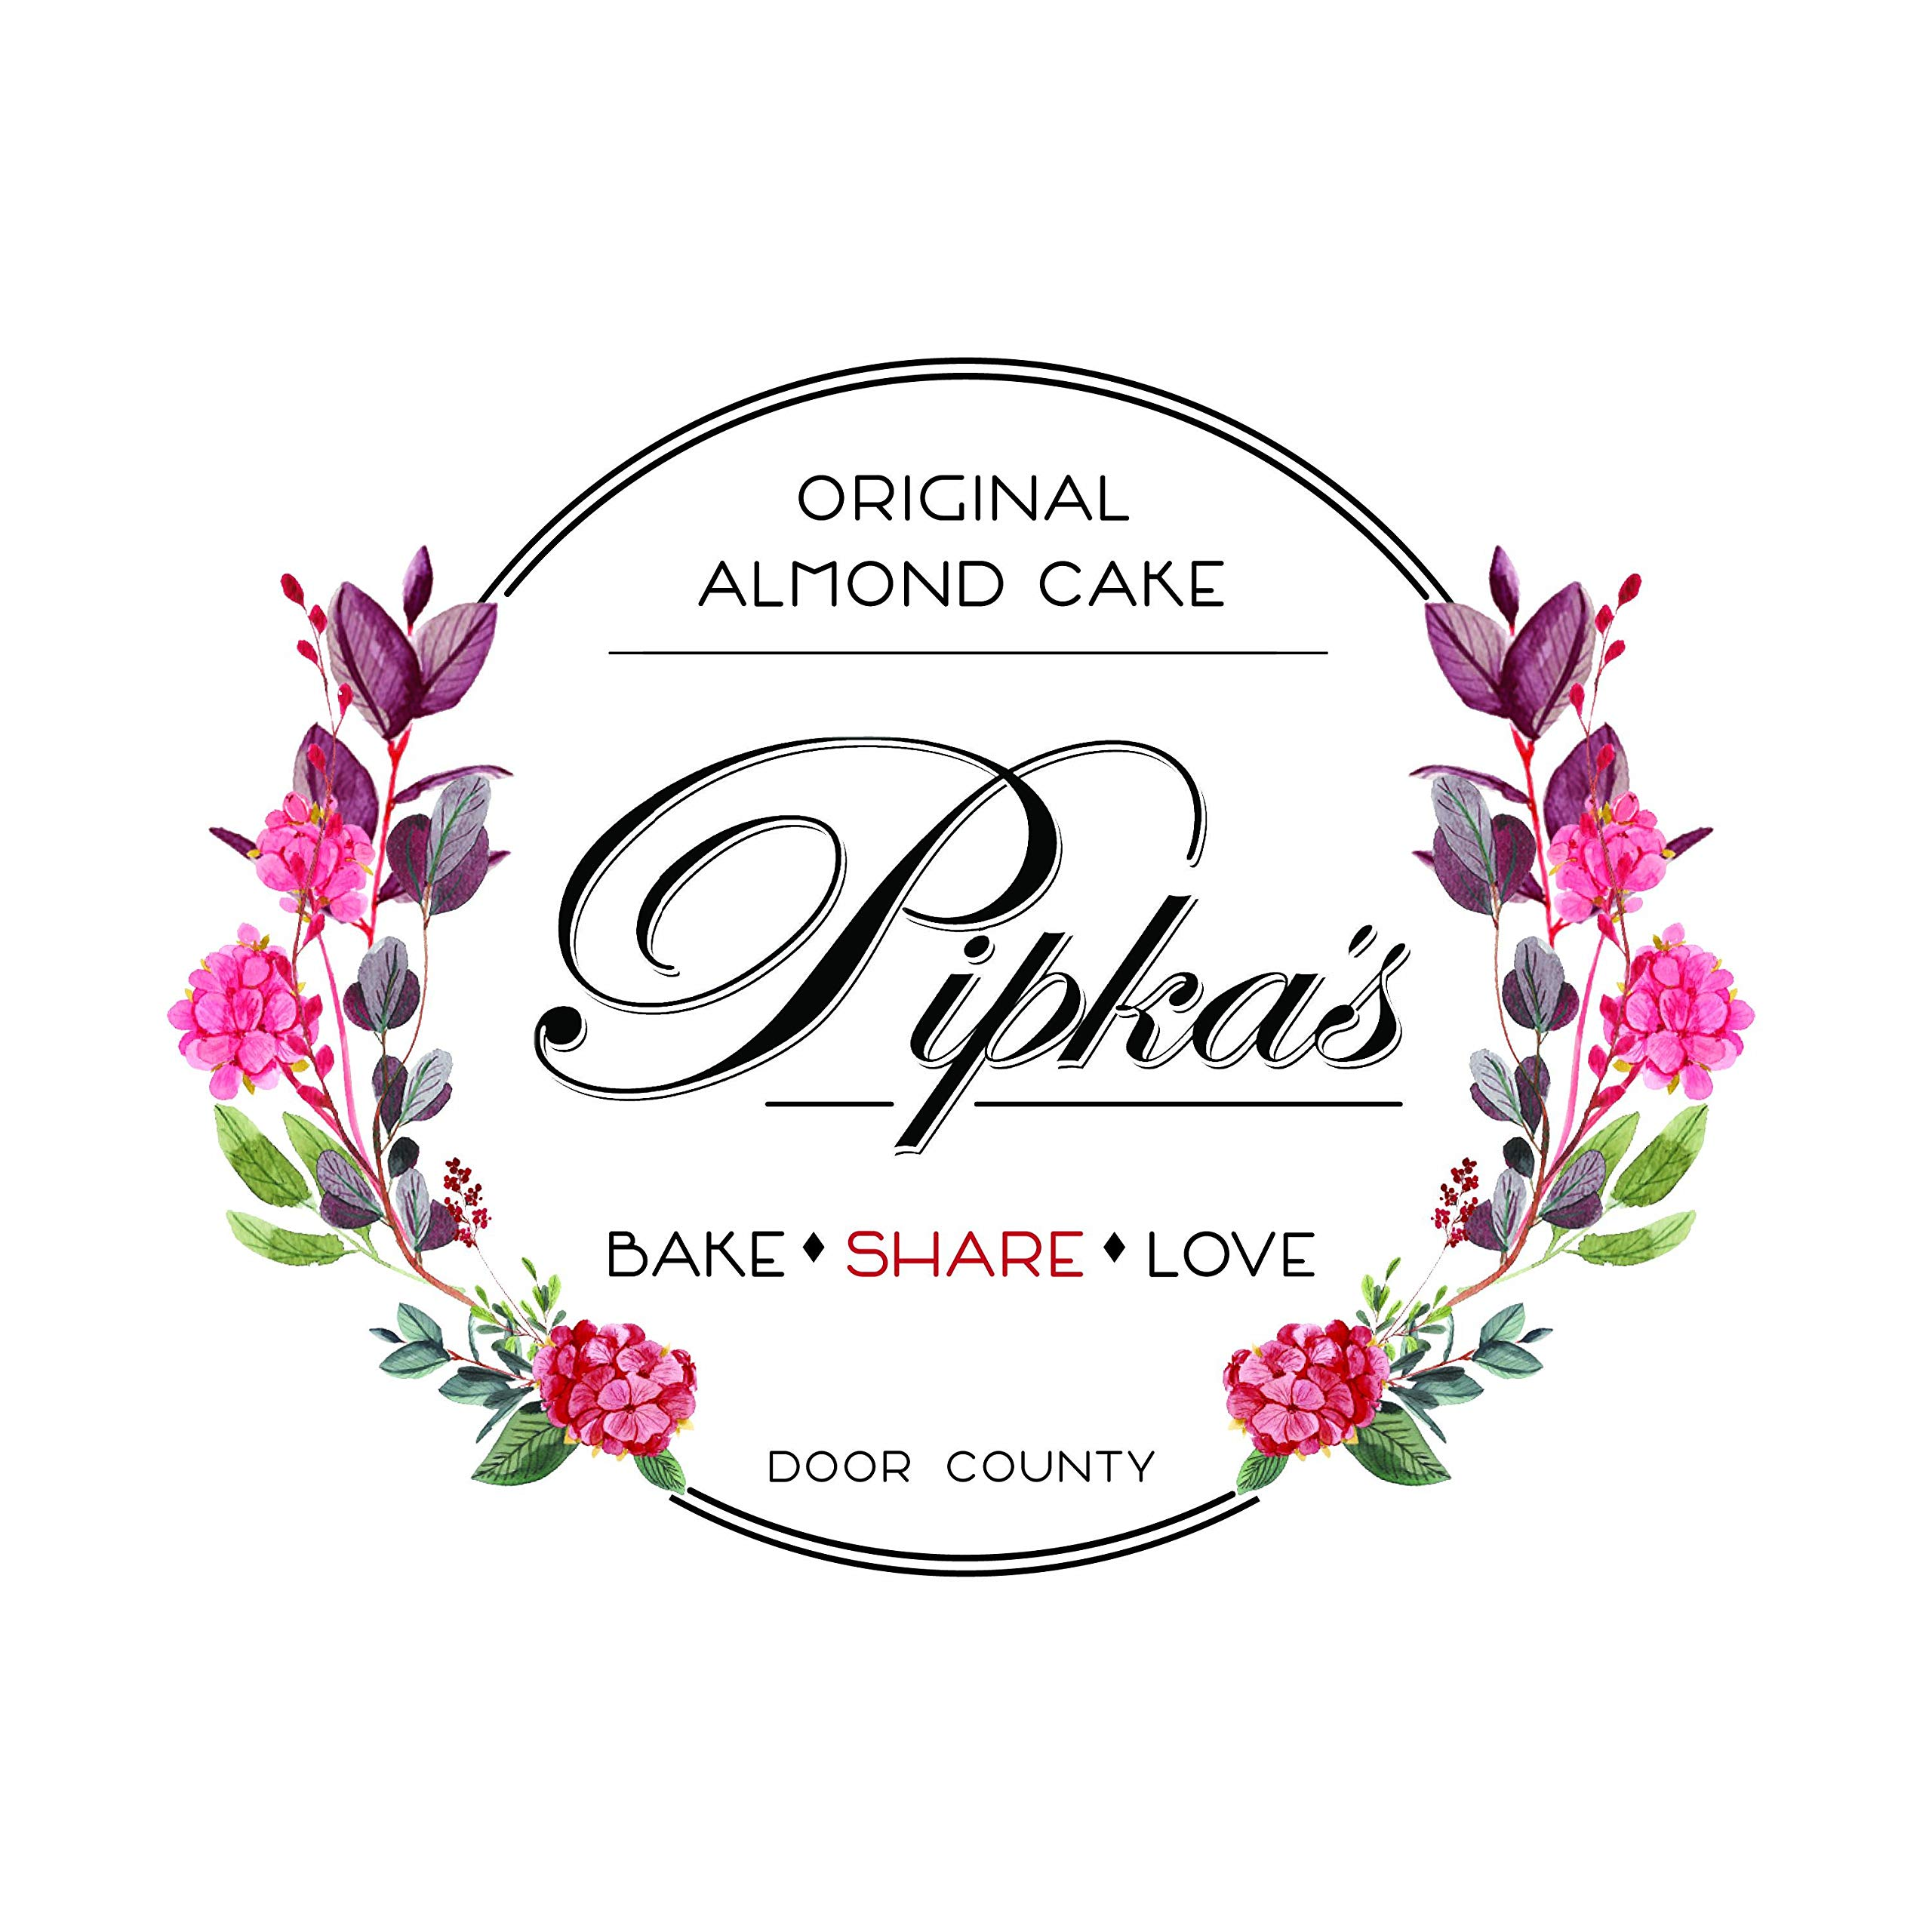 Pipka's Almond Cake Pan. ONE pan and ONE original recipe with over 40 variations. EASY release, non-stick PFOA FREE finish makes baking Pipka's Original Almond Cake easy. FREE recipe booklet. by Pipka